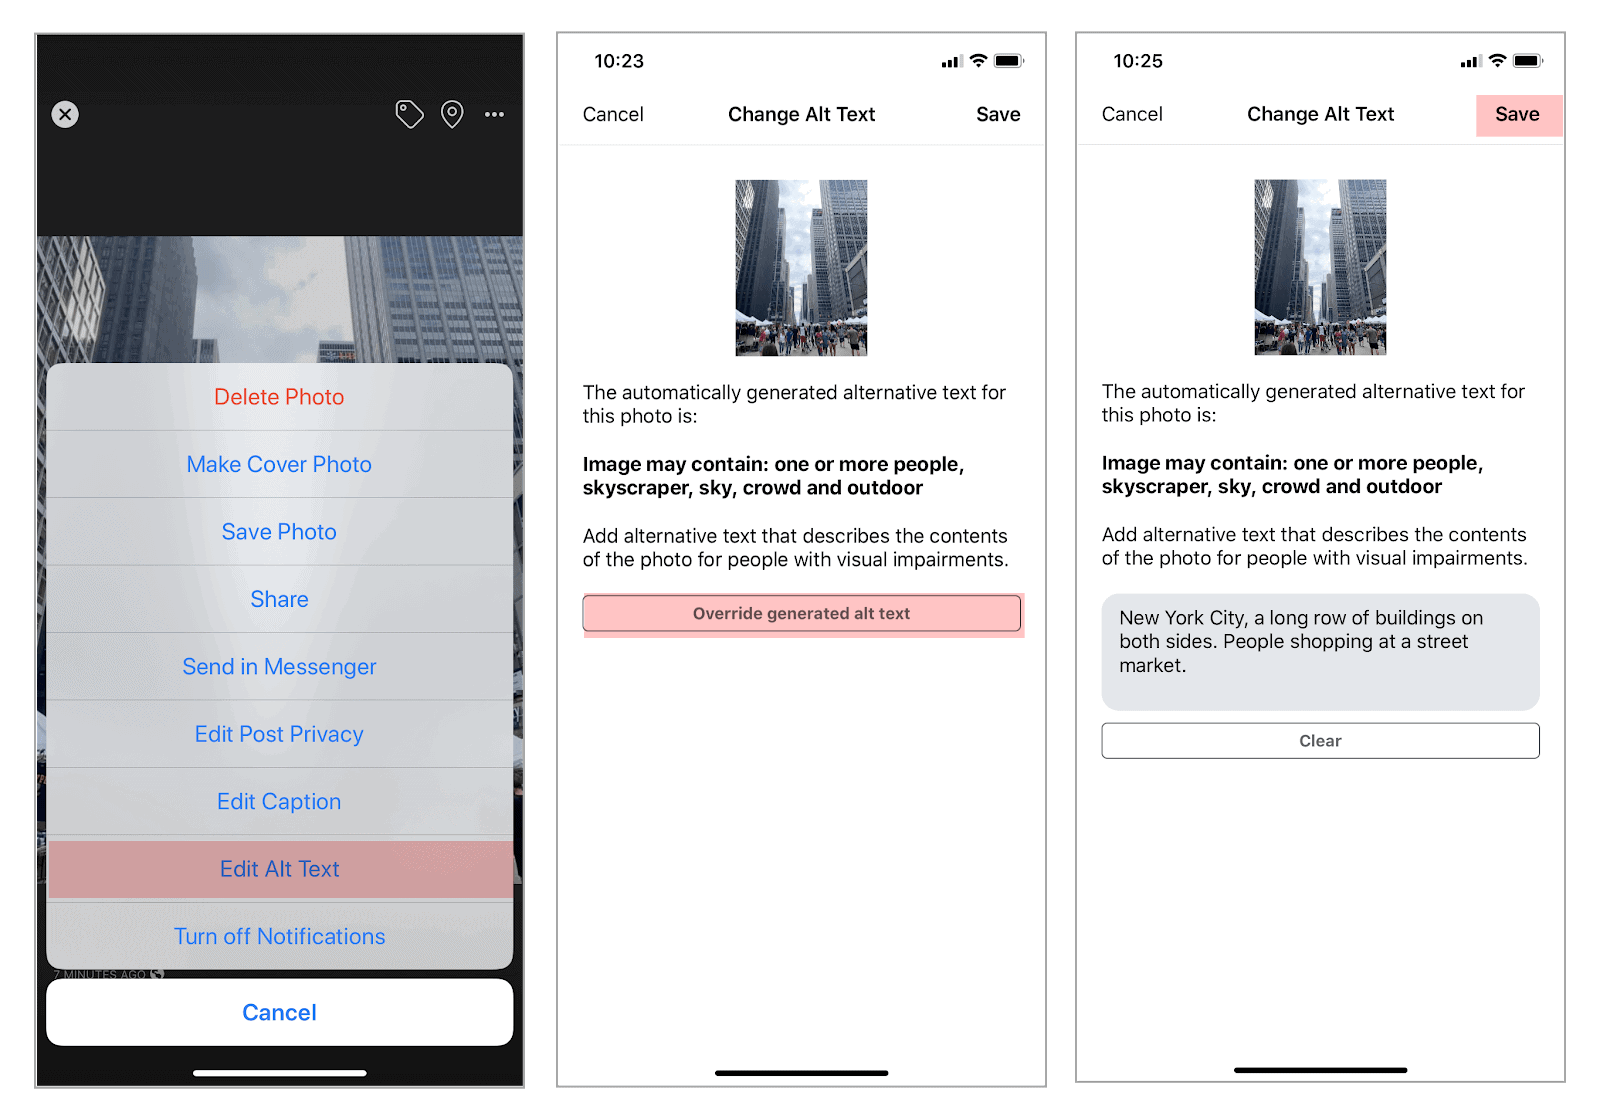 Screen shots of an iPhone showing the steps on how to replace alt text to an image.